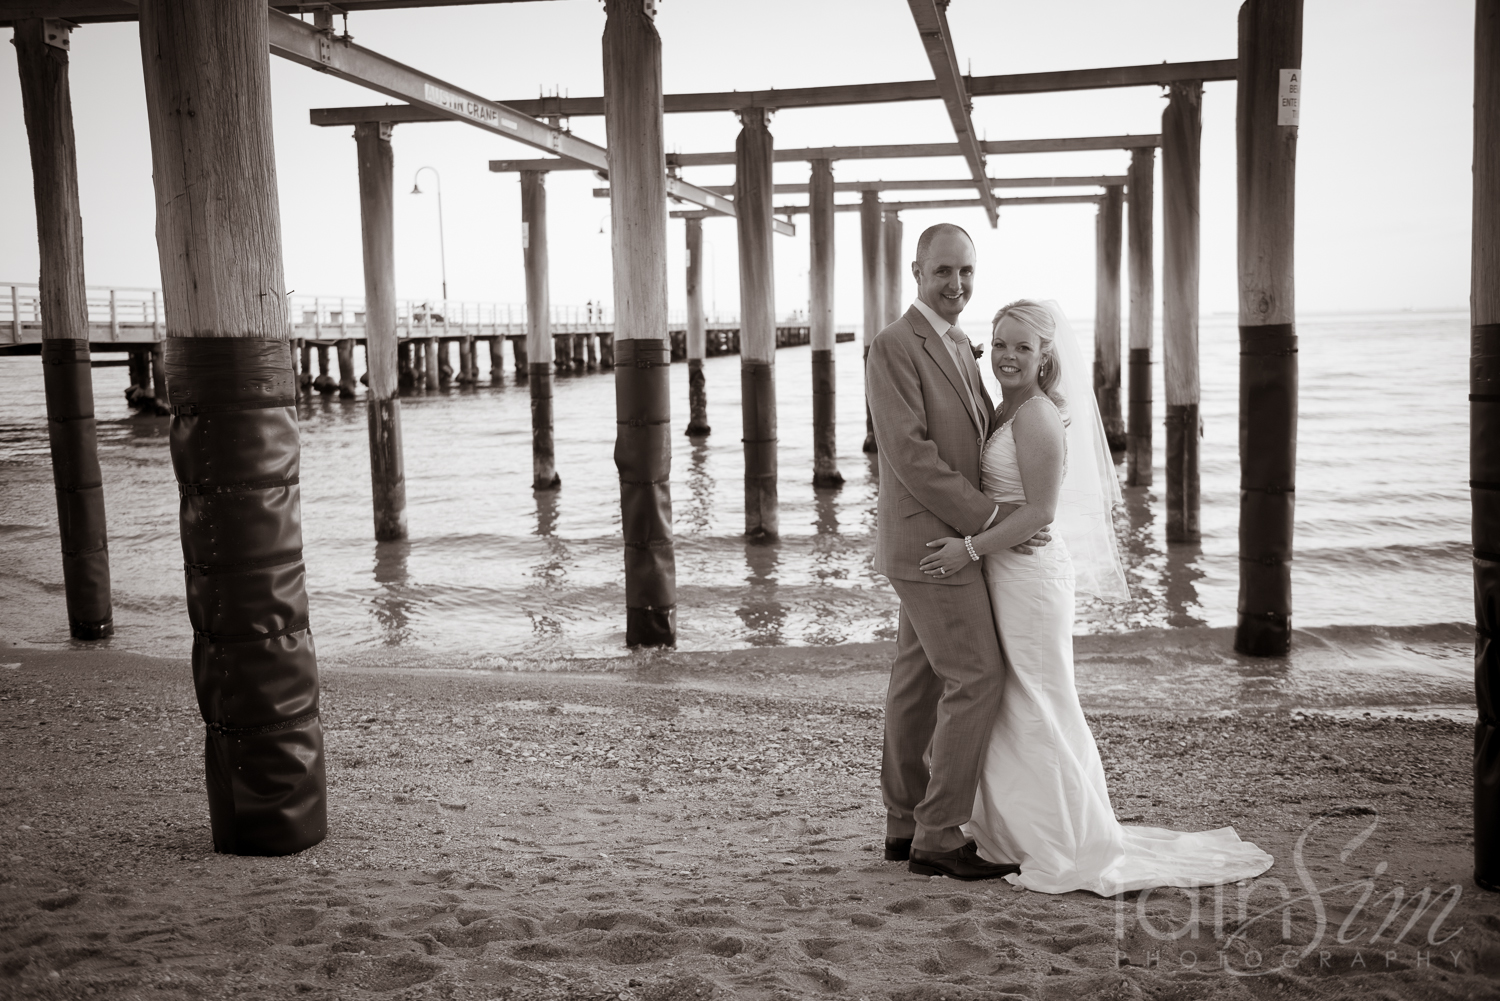 wpid-Justine-and-Steve-at-Waterfront-Port-Melbourne-by-Iain-Sim-Photography_021.jpg